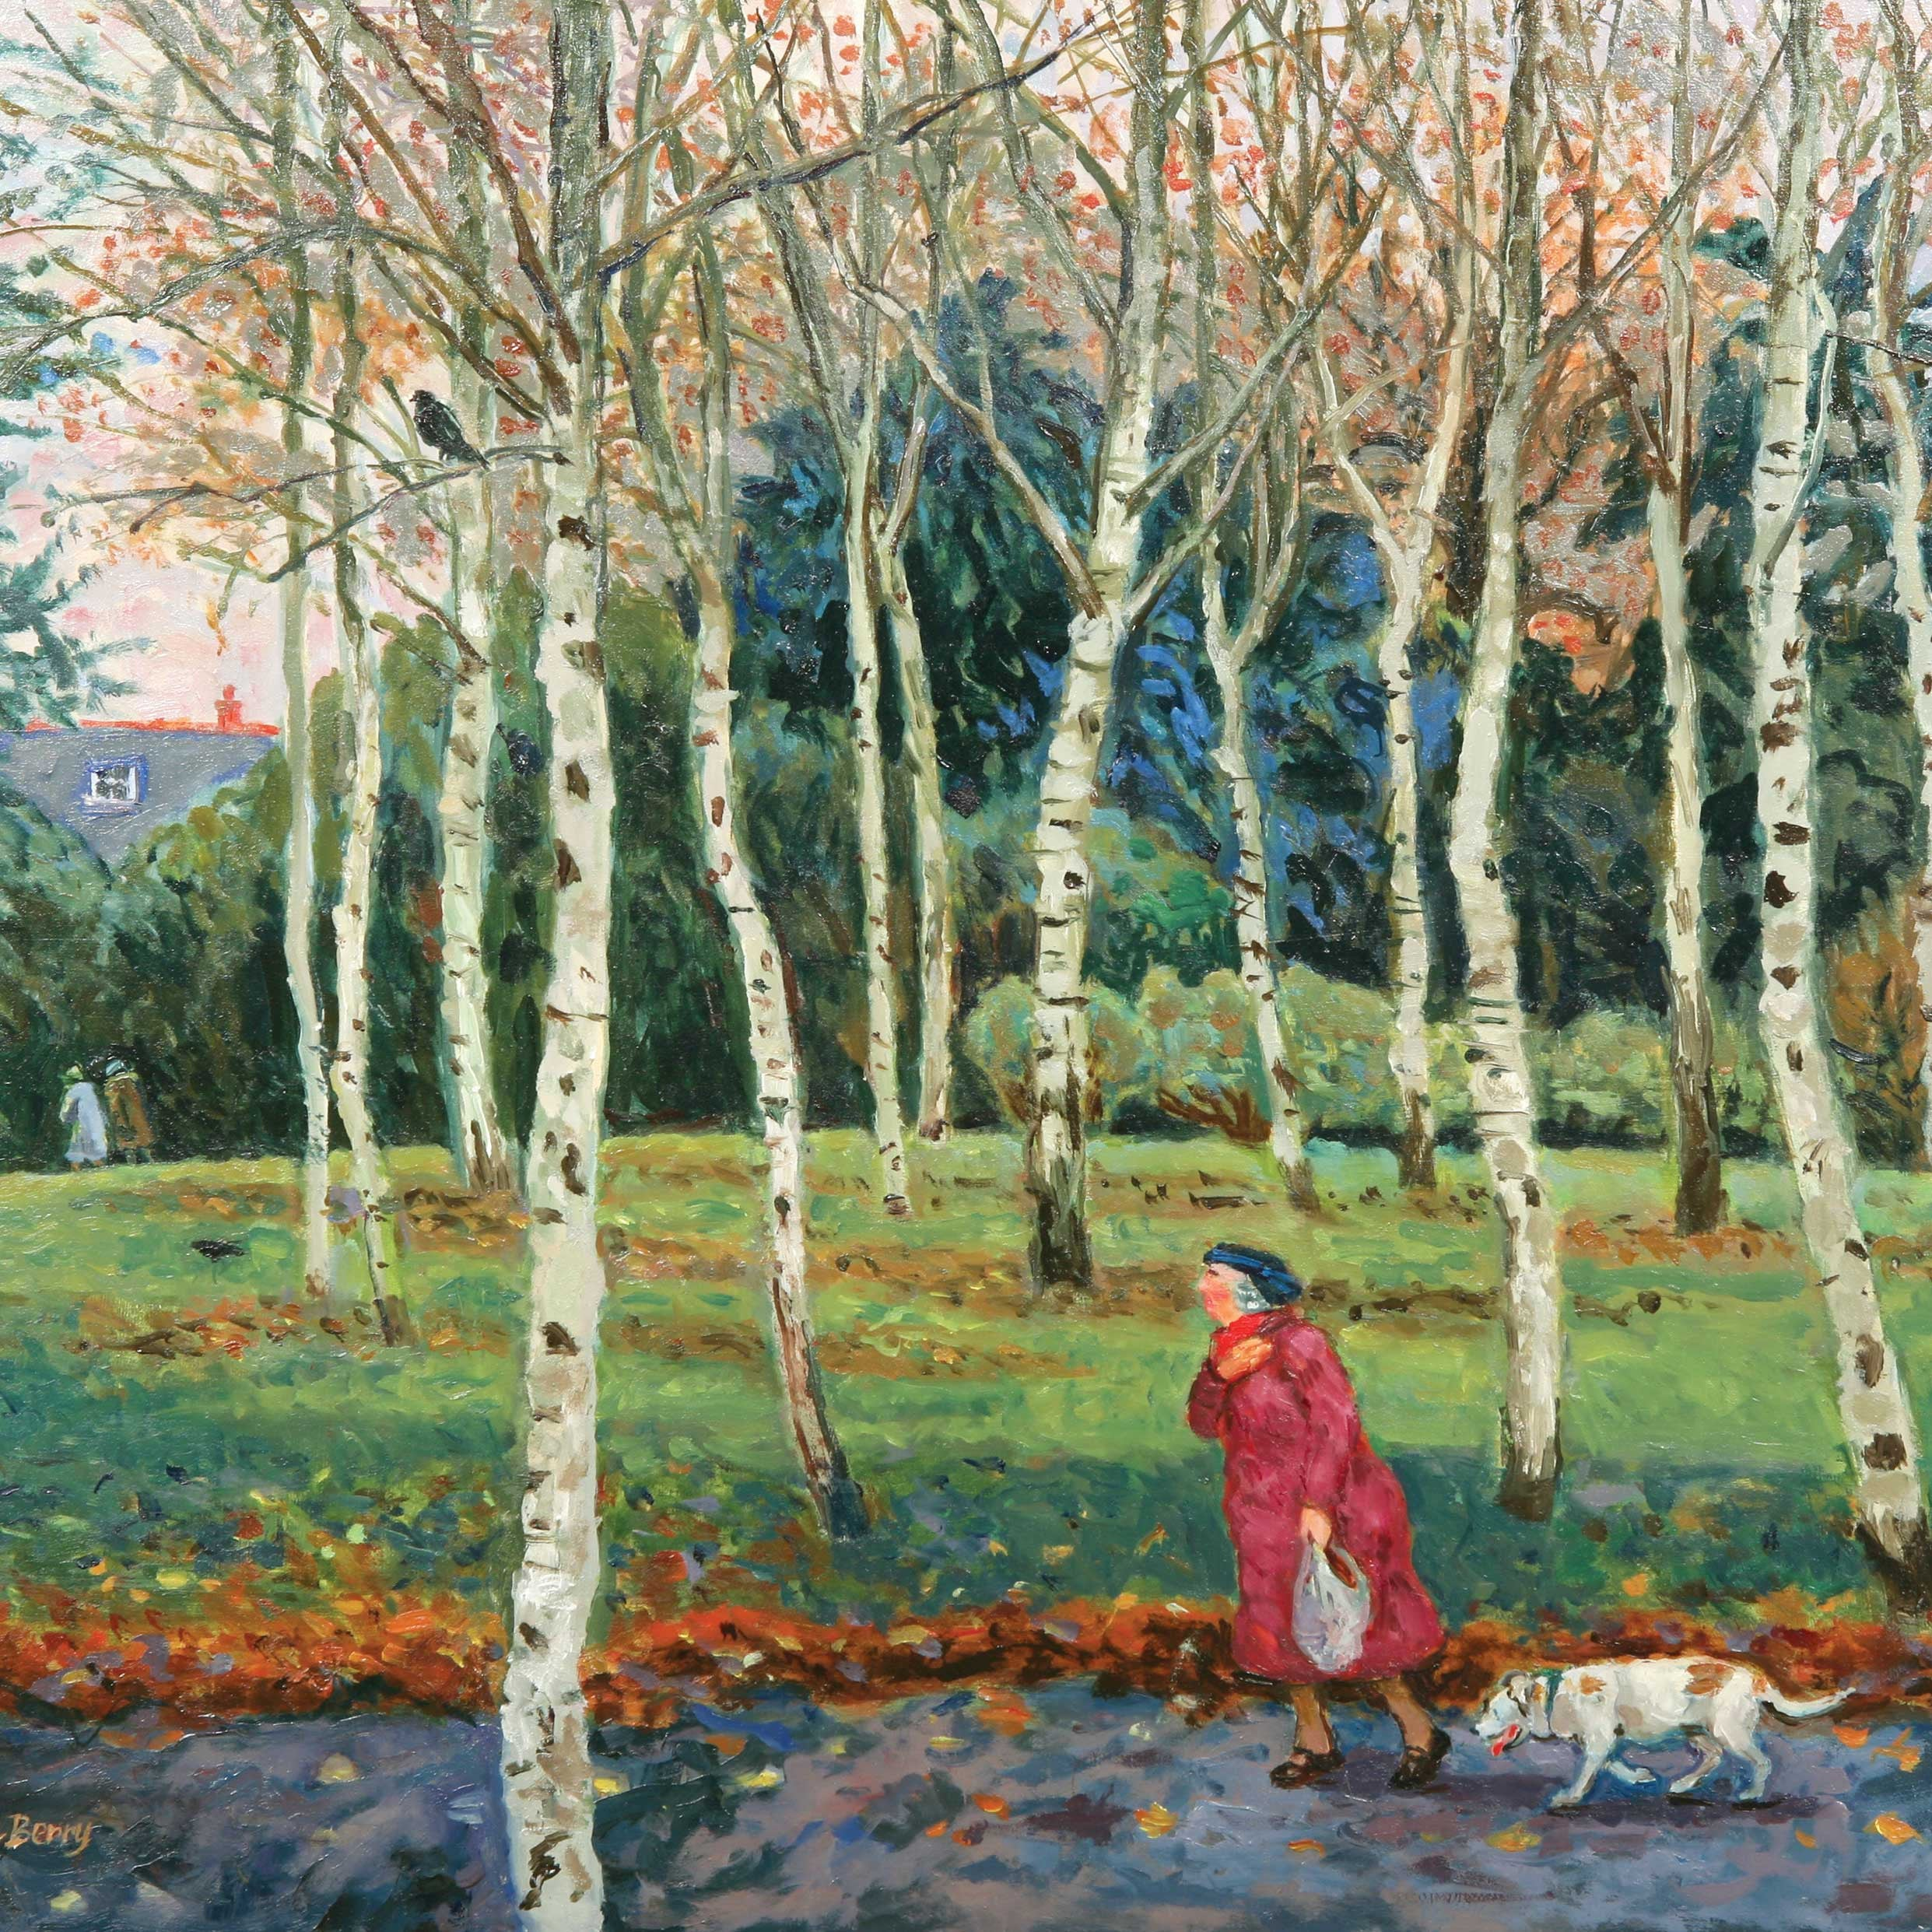 Elderly Couple Walking by June Berry, Fine Art Greeting Card, Lady with dog walking in park, elderly couple in background